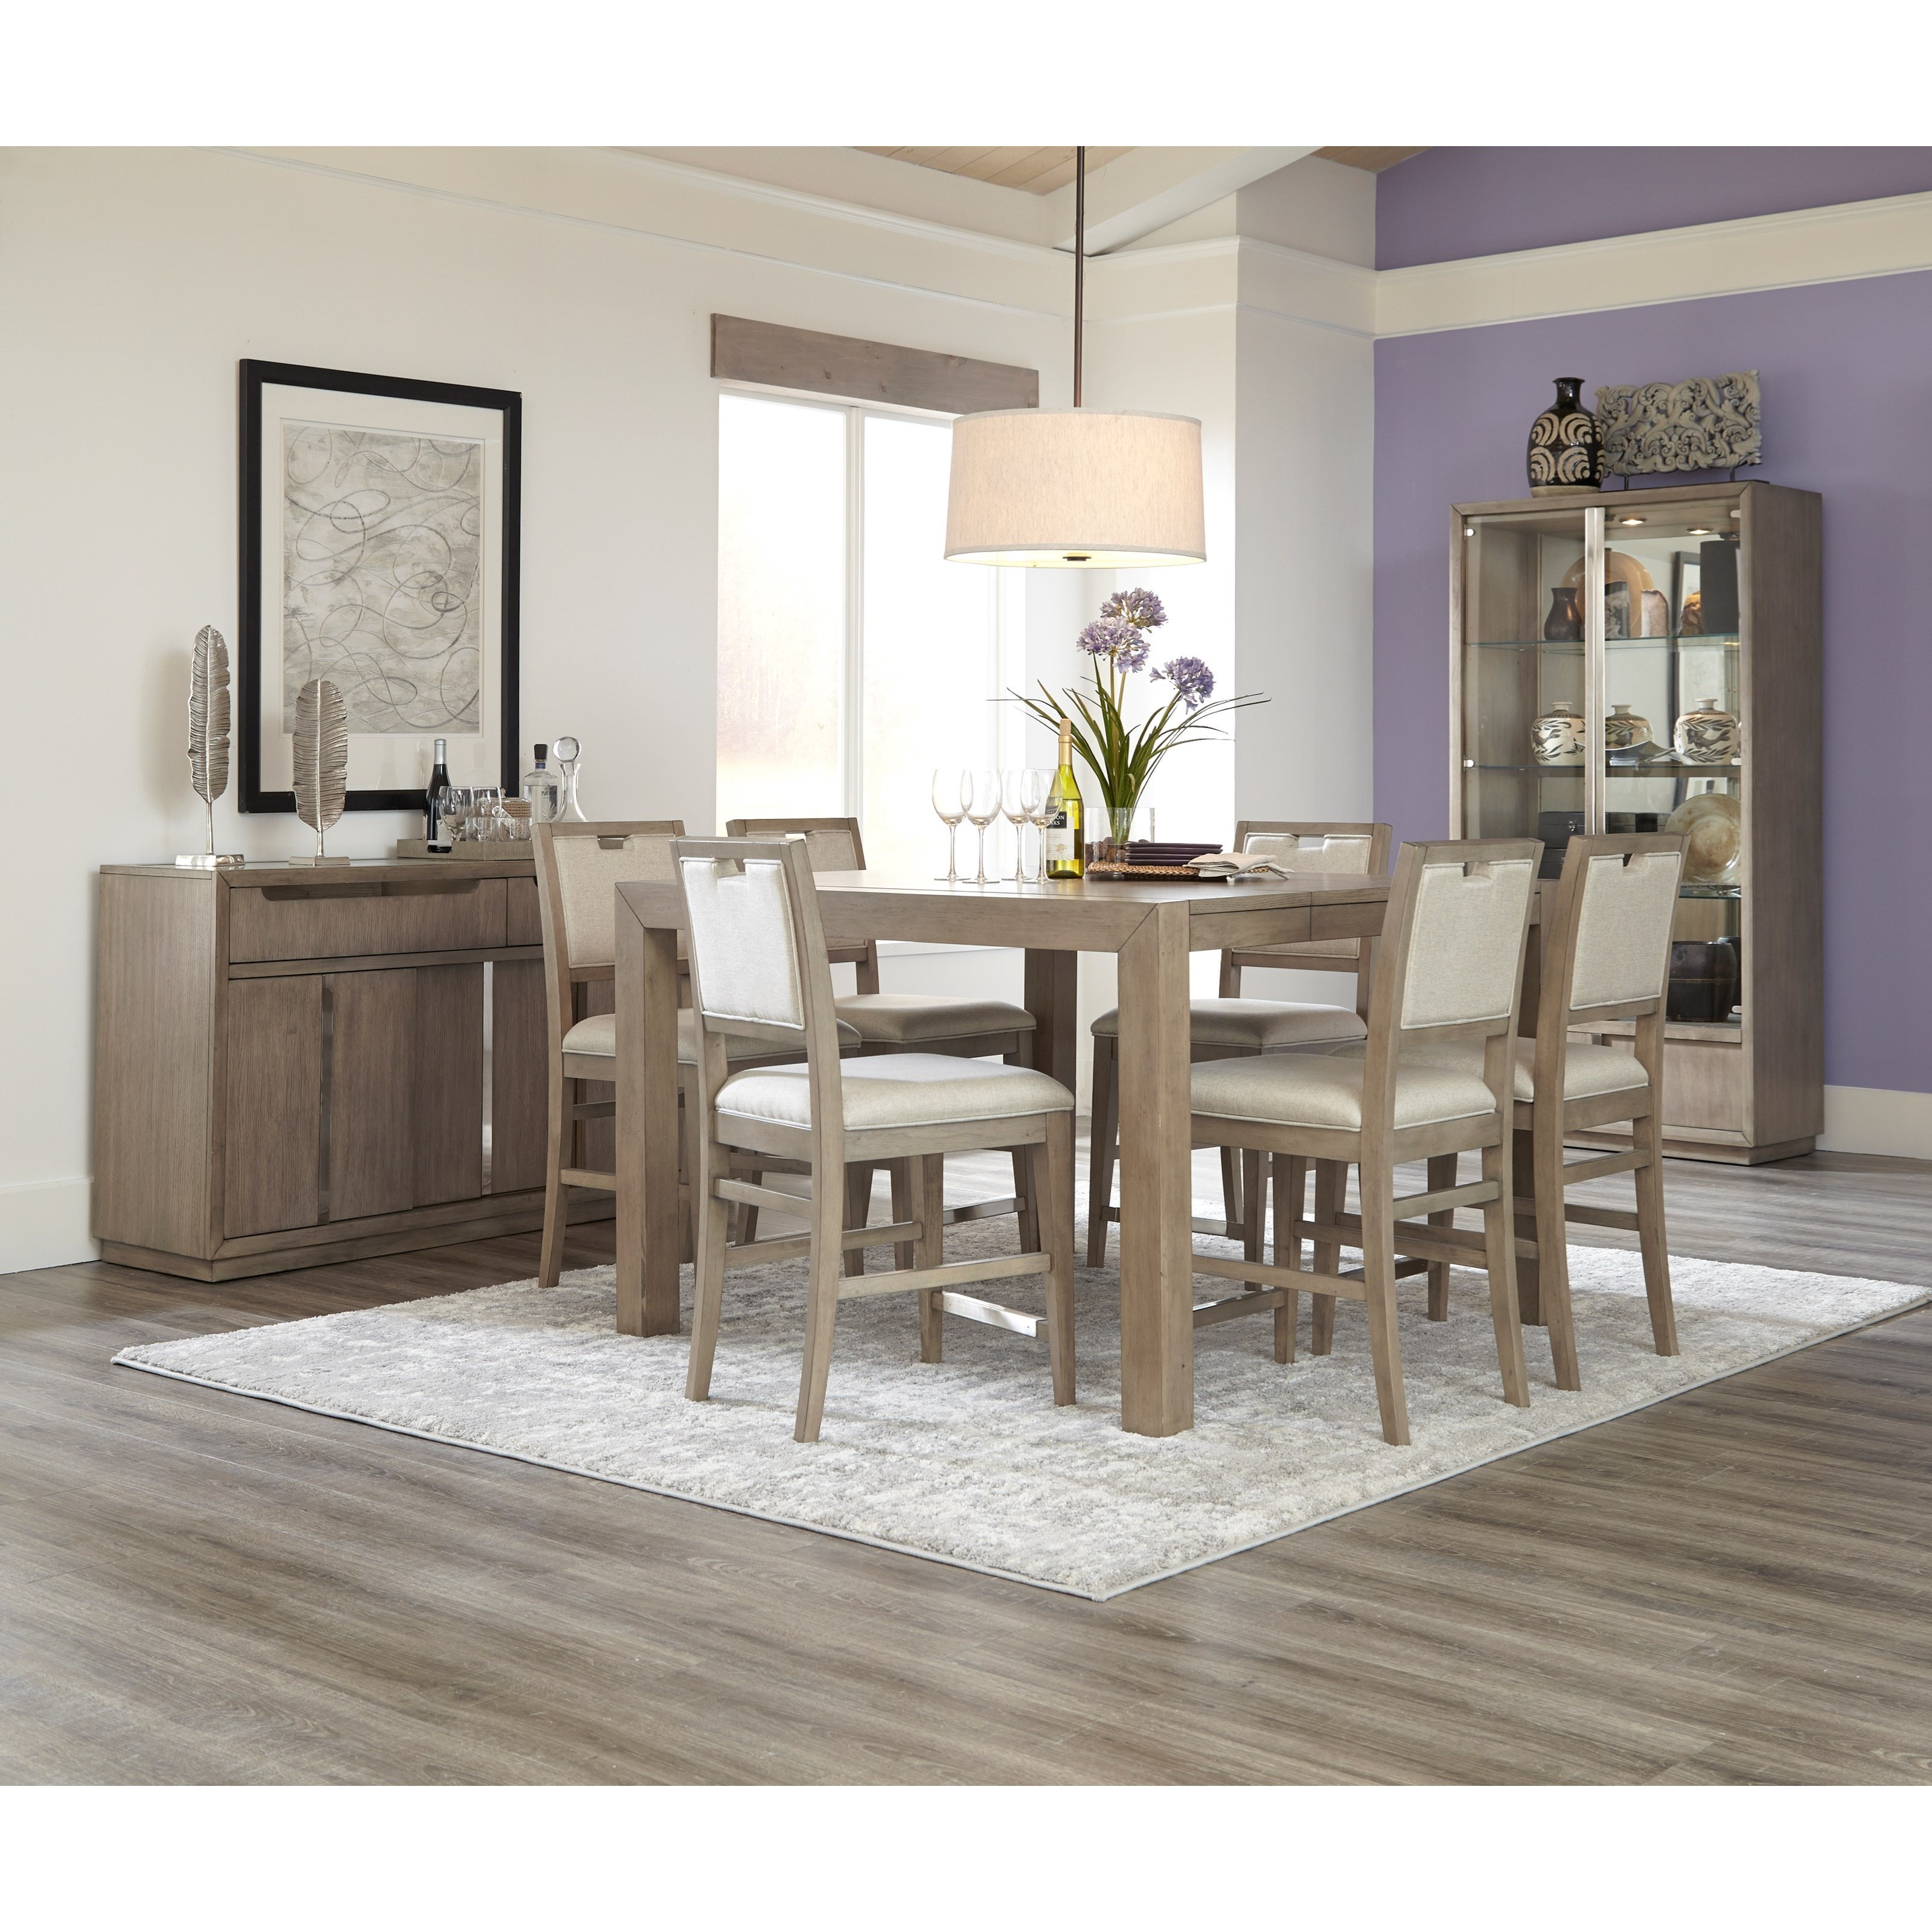 Melbourne Casual Counter Height Dining Room Set by Klaussner International  sc 1 st  Pilgrim Furniture City & Klaussner International Melbourne Casual Counter Height Dining Room ...